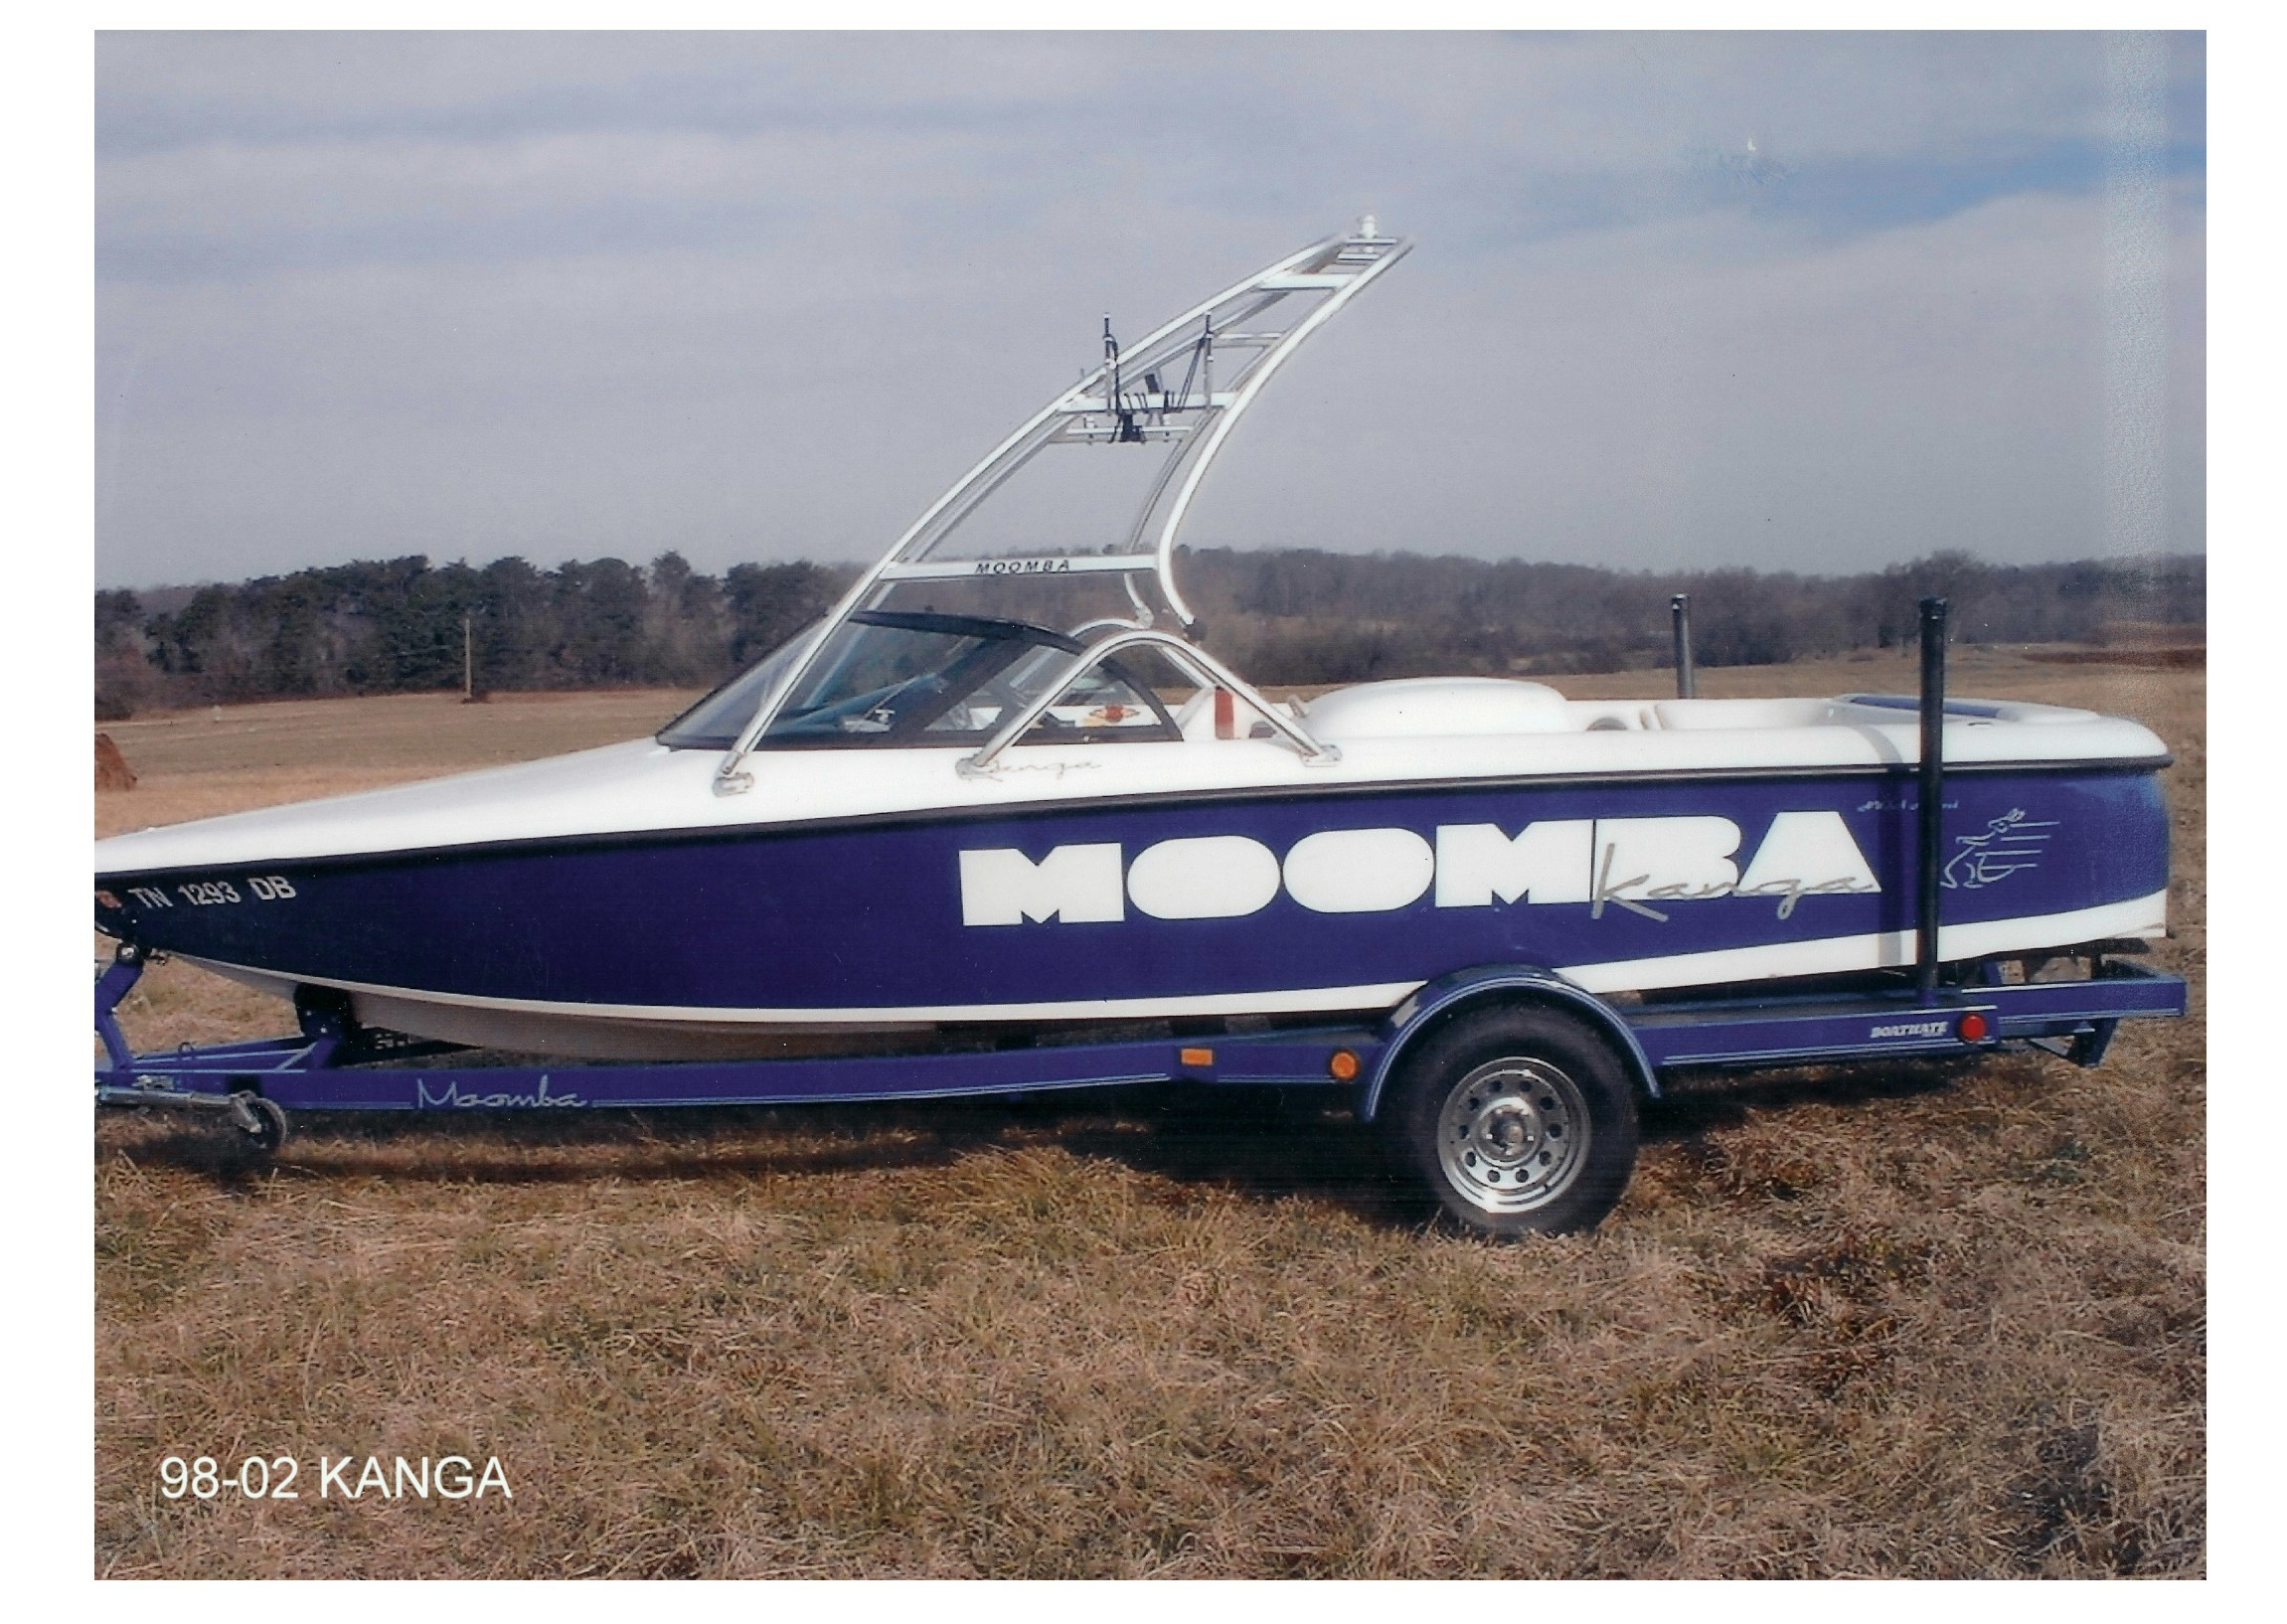 main view of 98 - 02 moomba kanga with new dimension wakeboard tower